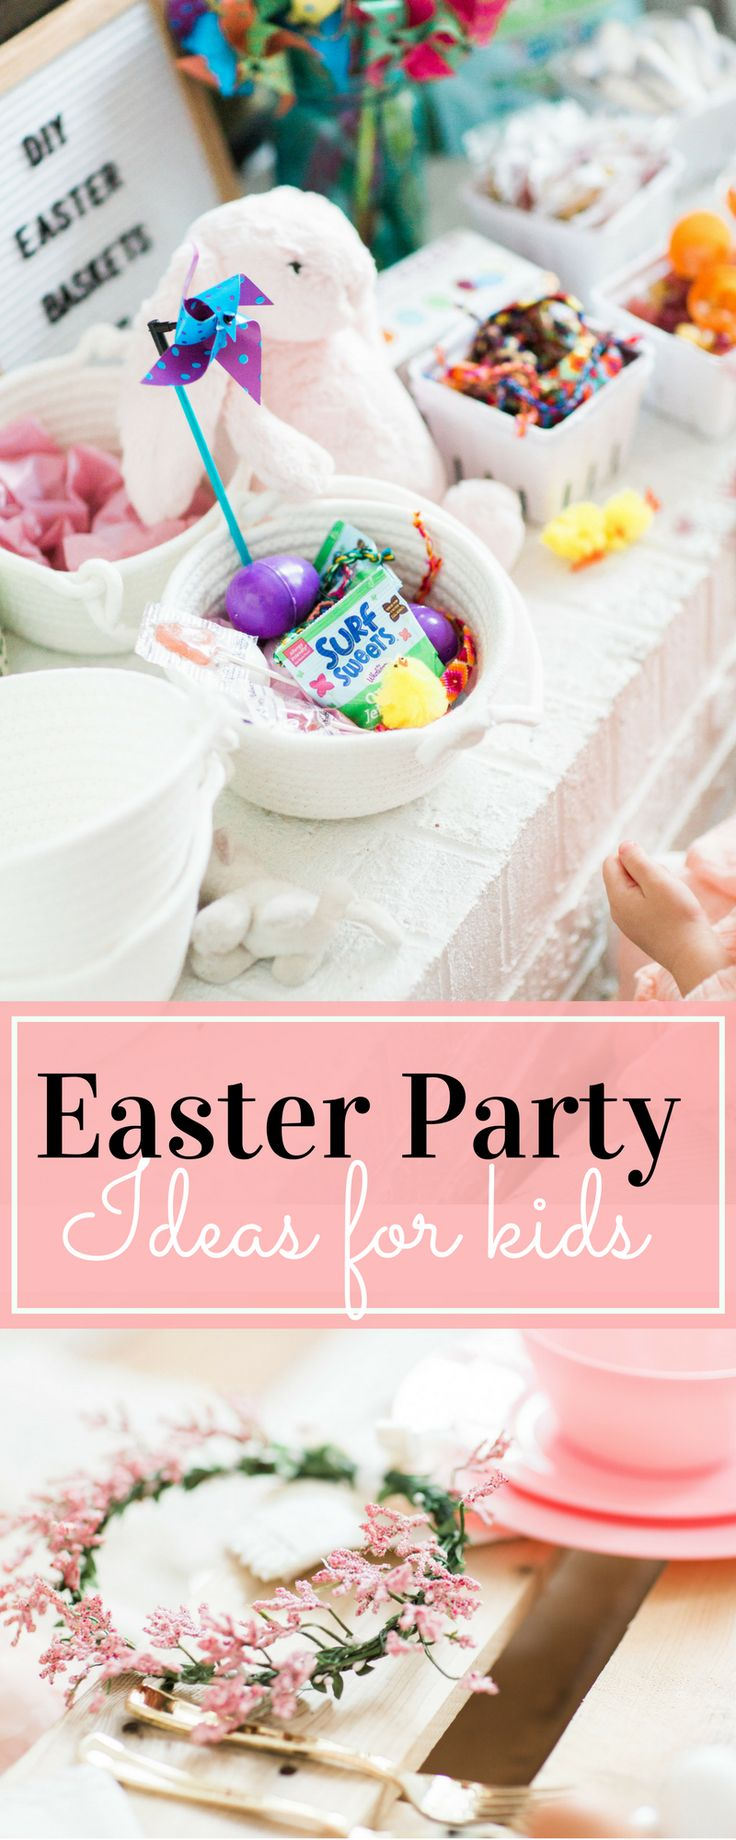 Looking for the sweetest Easter party for your little ones this Spring? This Some Bunny Loves You kids picnic Easter party has it all! | glitterinc.com | @glitterinc